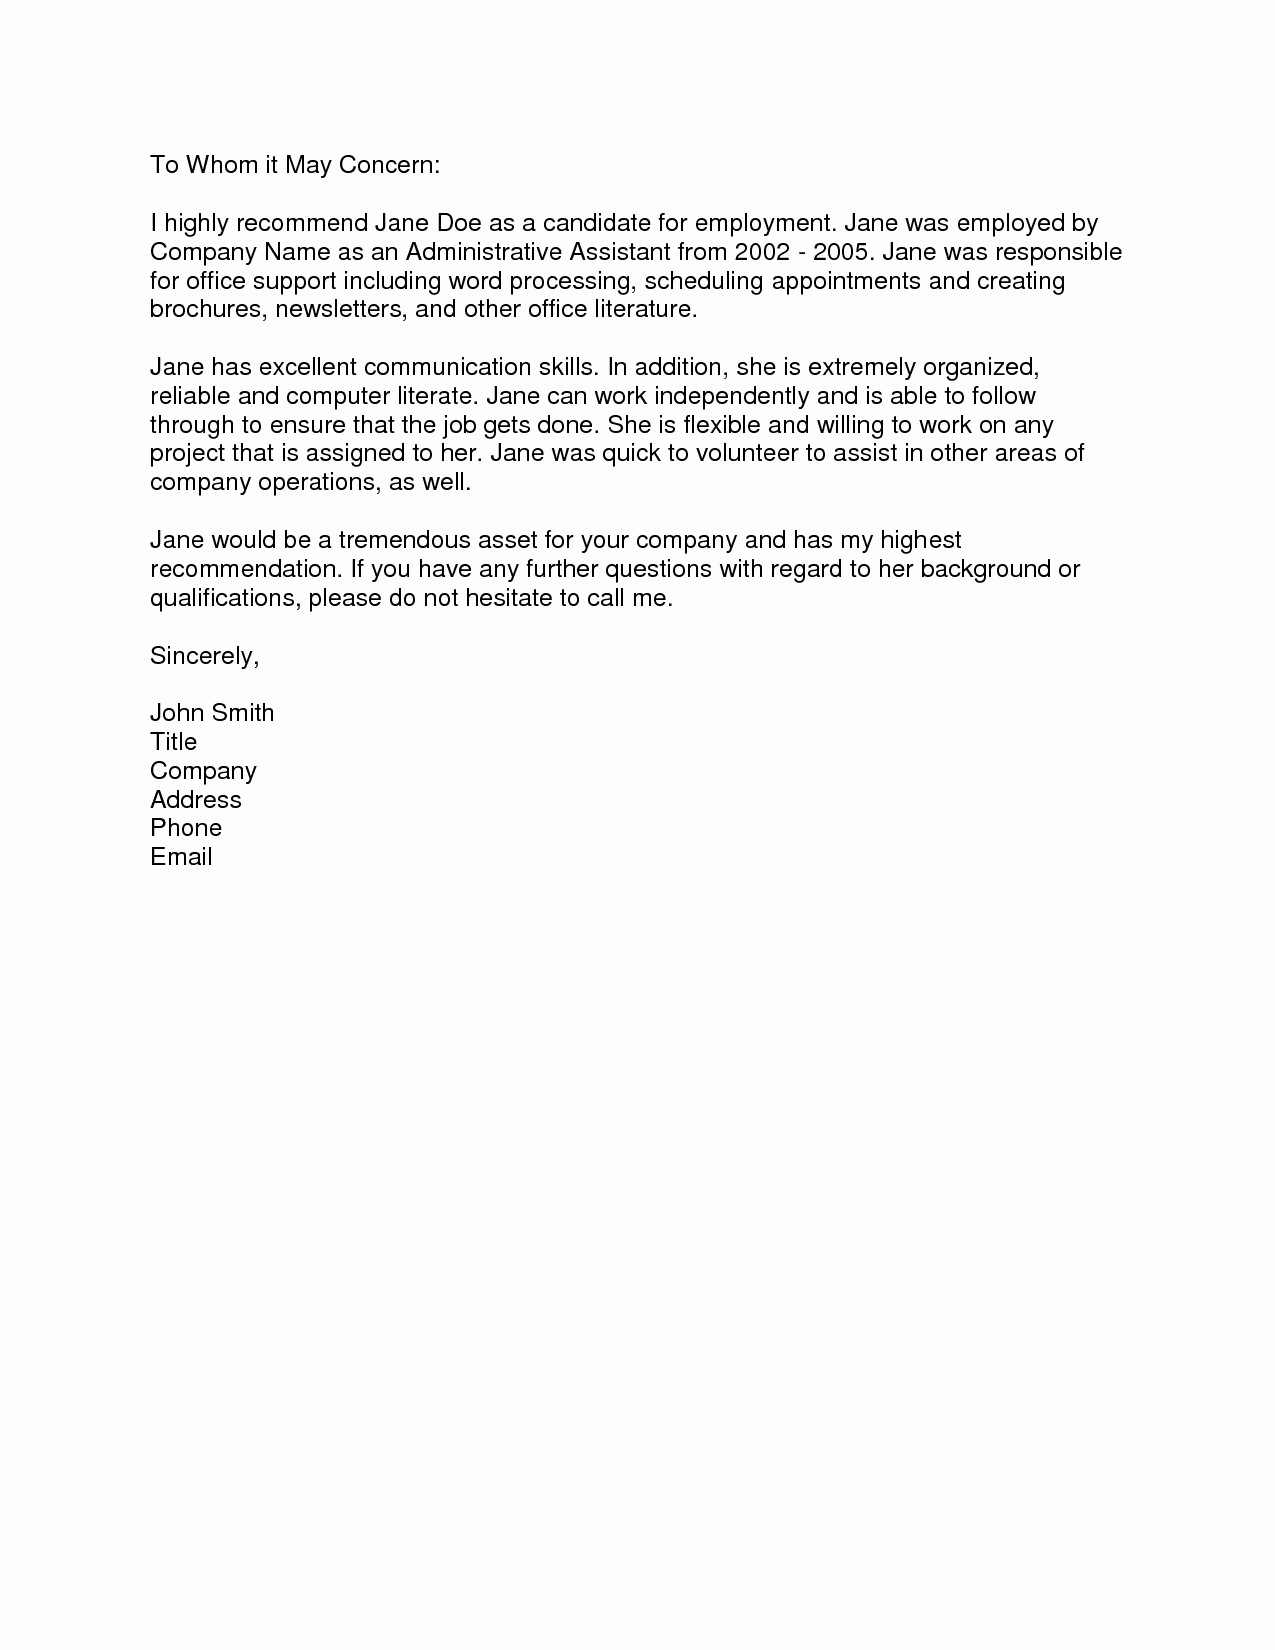 Recommendation Letter for An Employee Beautiful Portablegasgrillweber All About Best Resume Experience